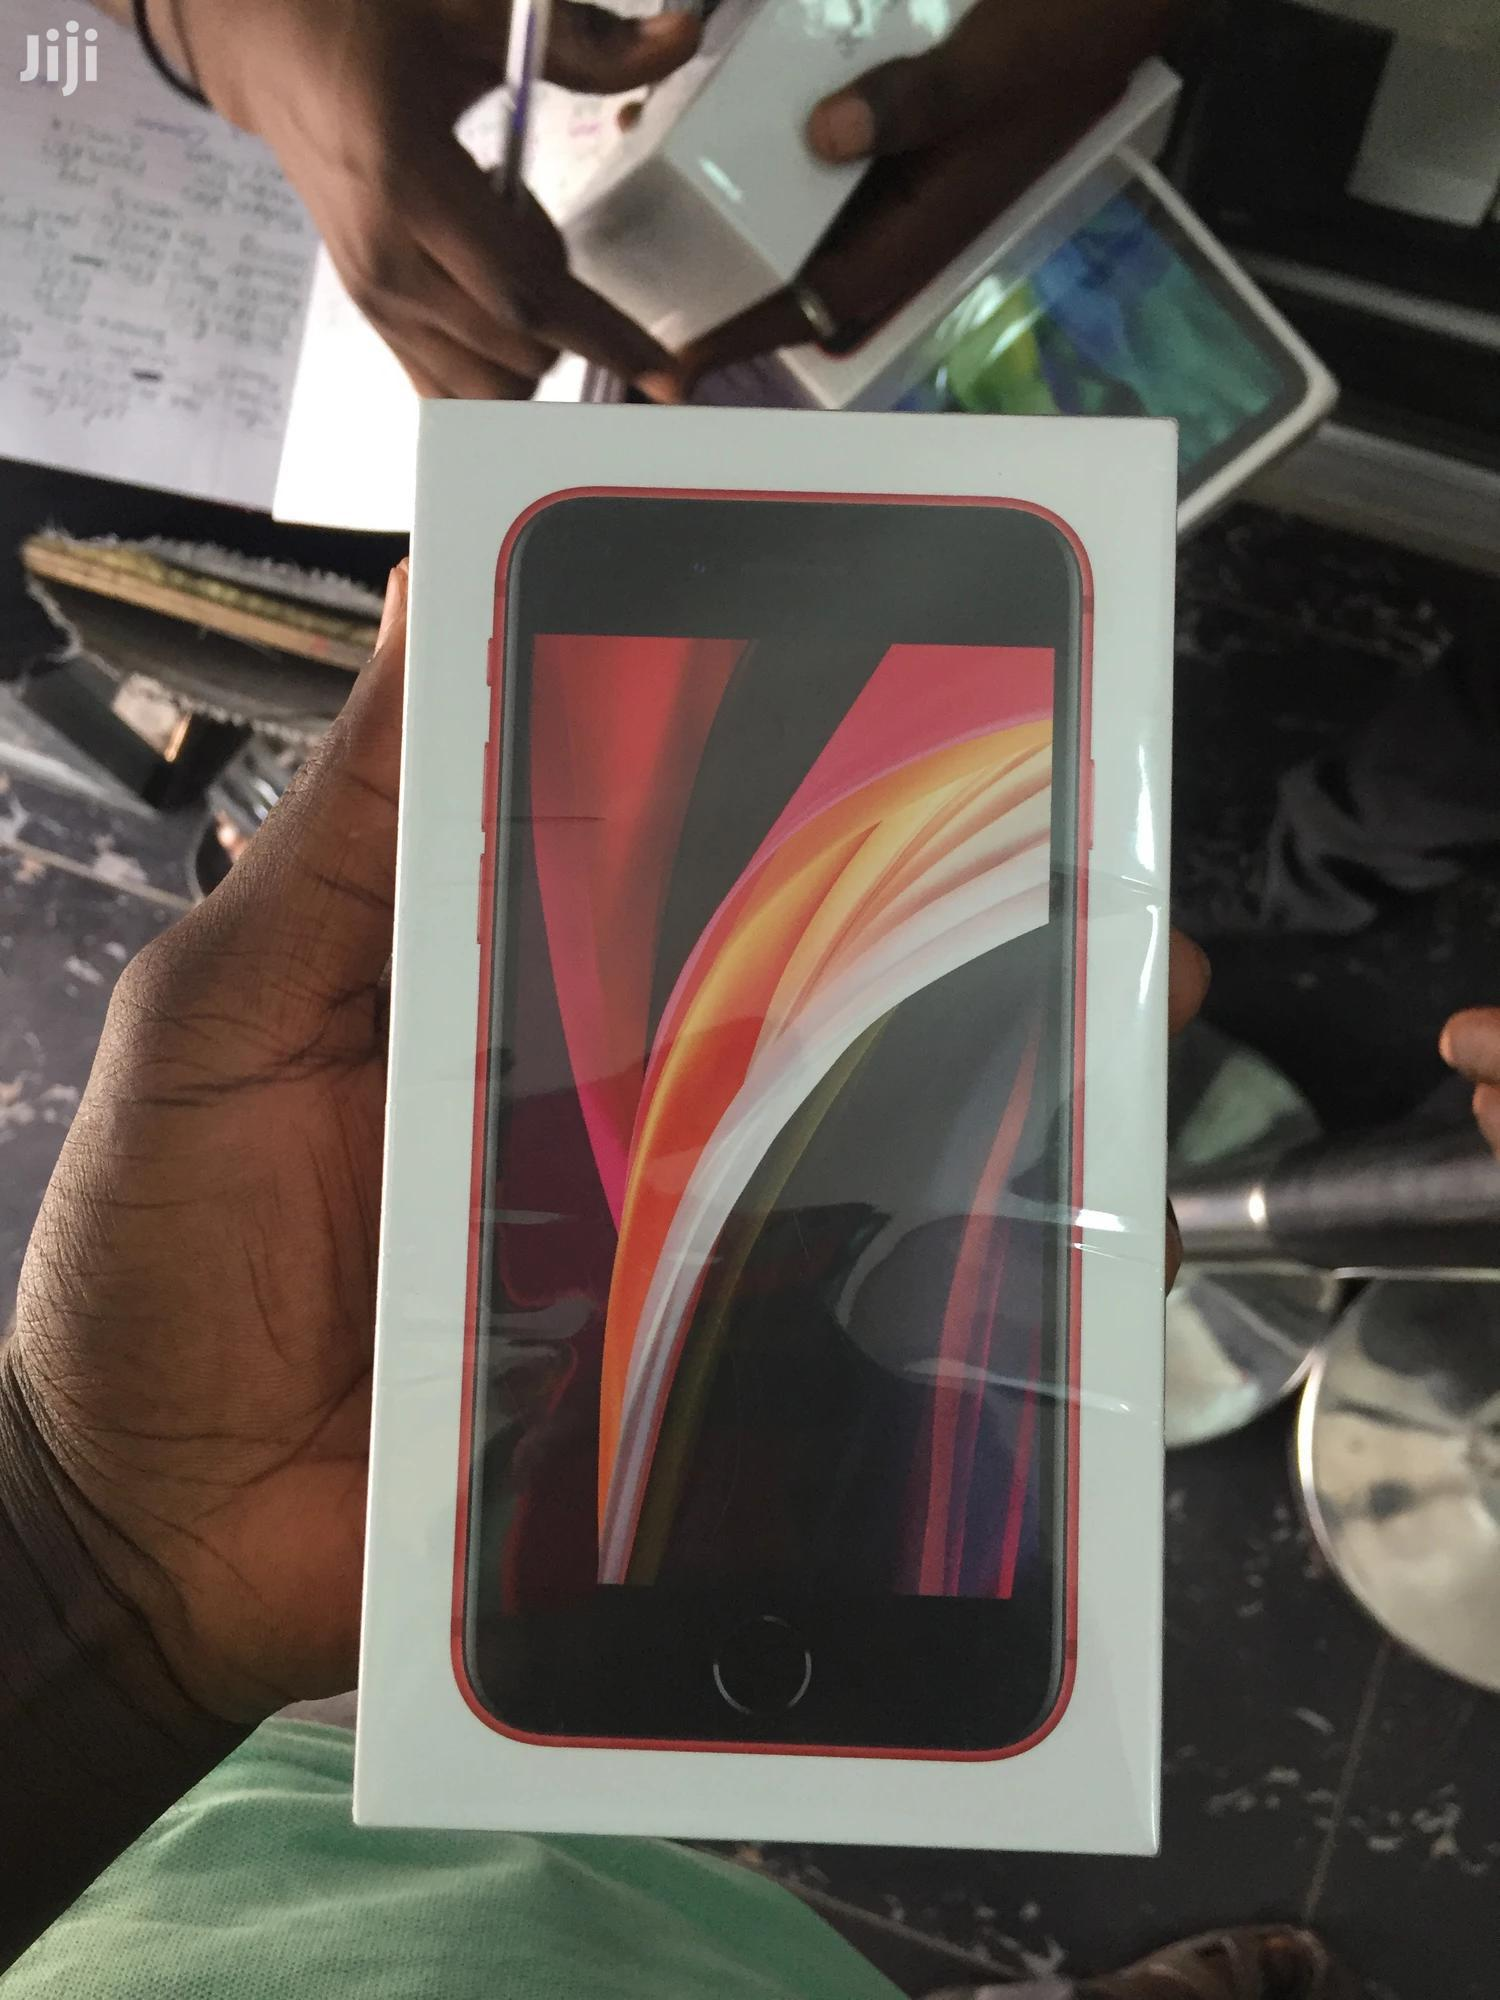 New Apple iPhone SE 64 GB Red